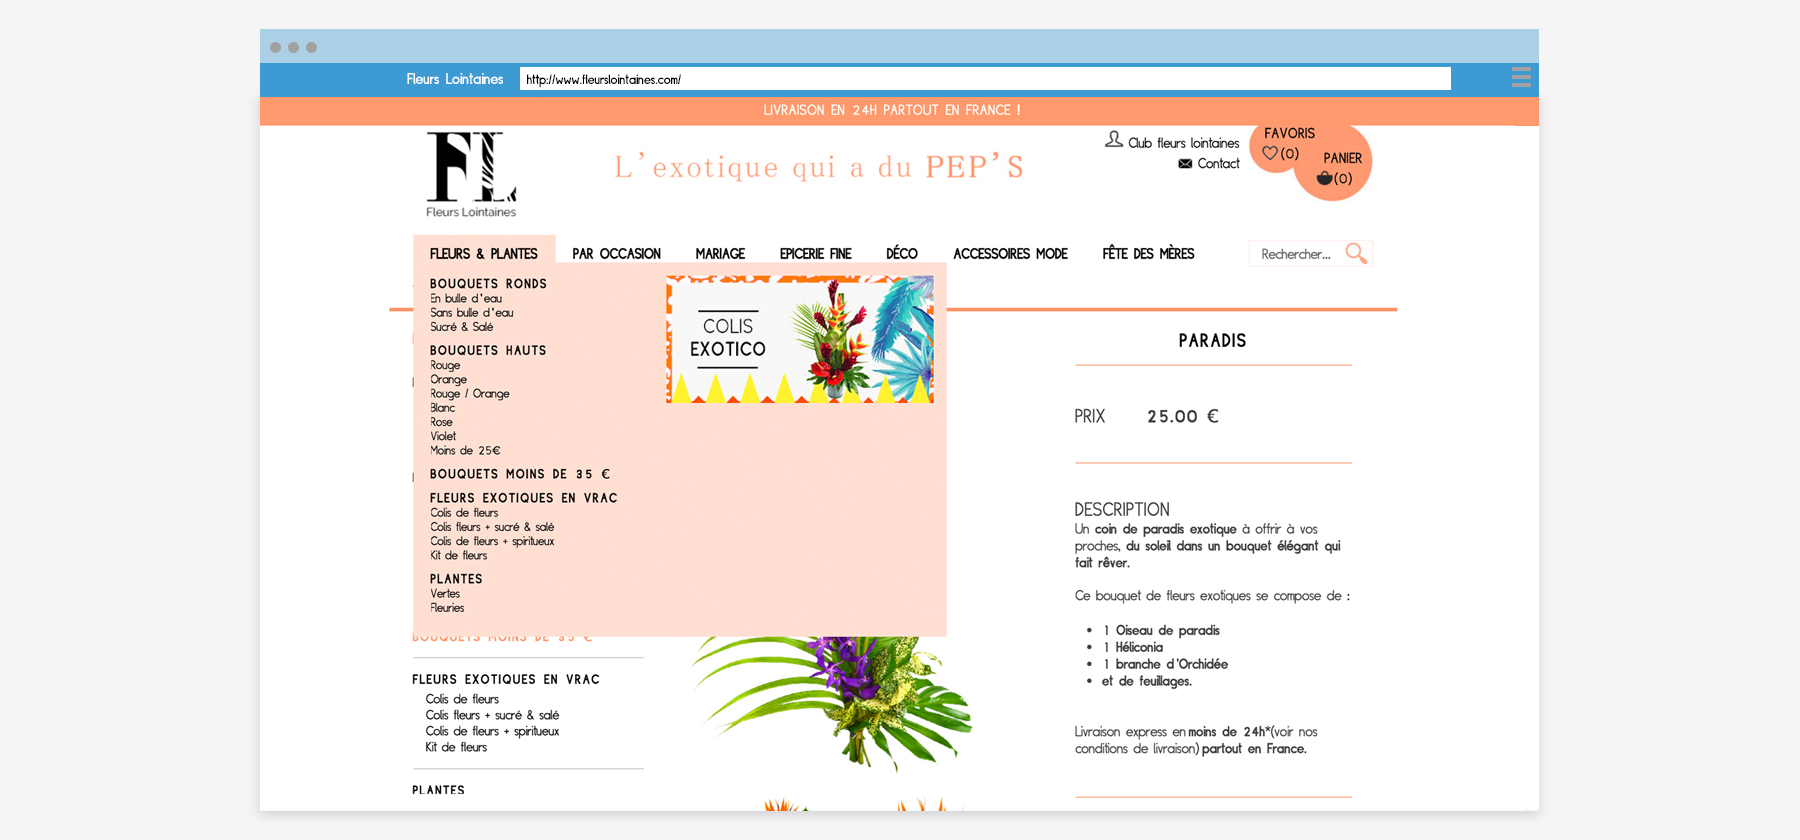 fleurs-lointaines-page-3